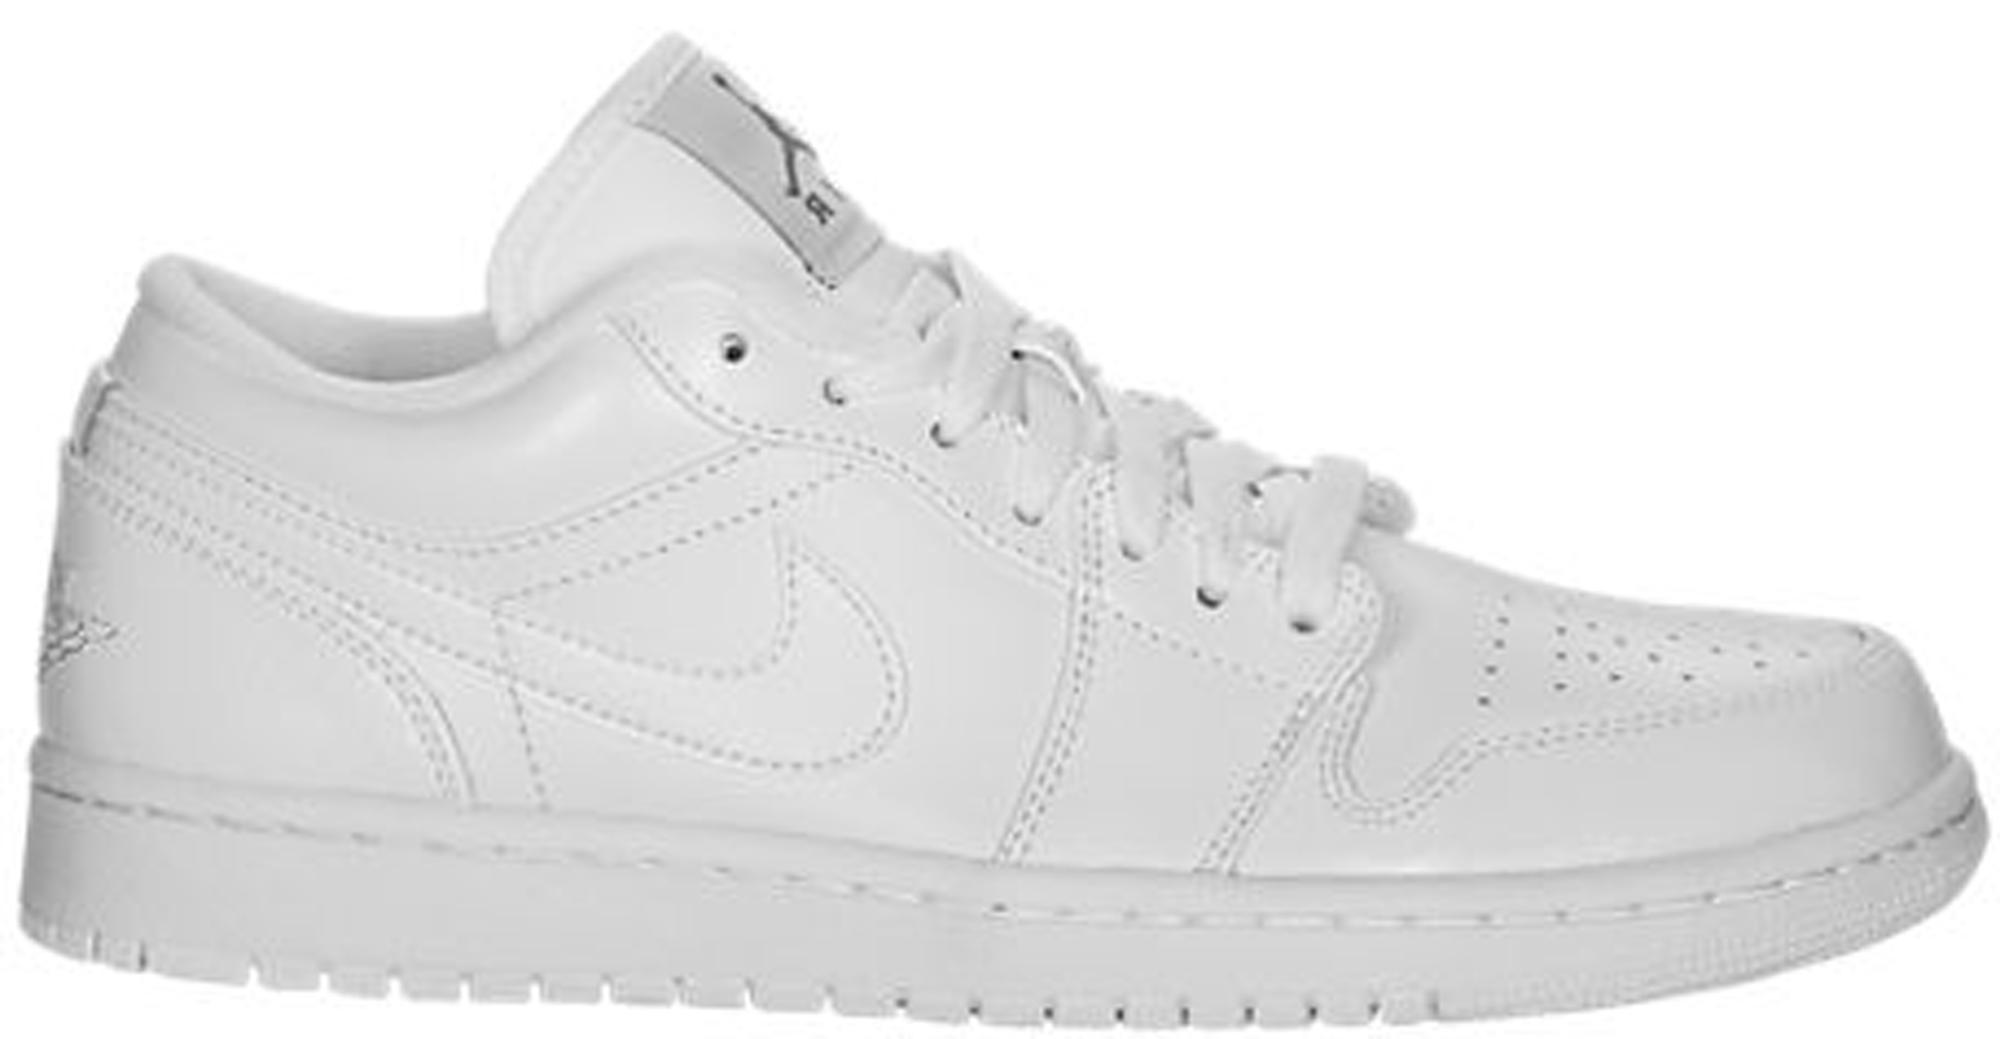 c84e3bcc Lyst - Nike 1 Low Triple White in White for Men